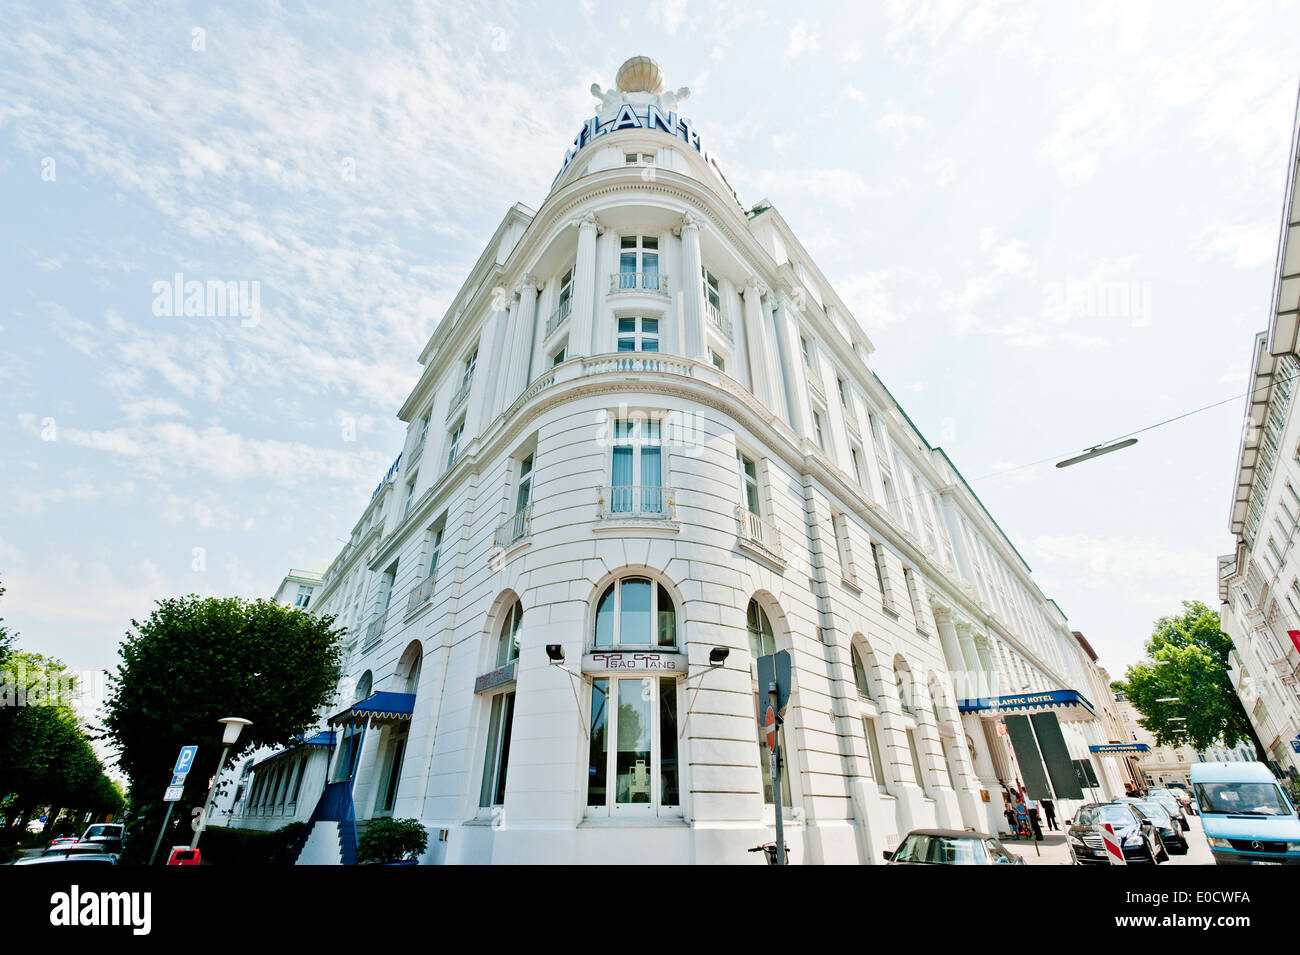 hotel building in hamburg stock photos hotel building in hamburg stock images alamy. Black Bedroom Furniture Sets. Home Design Ideas